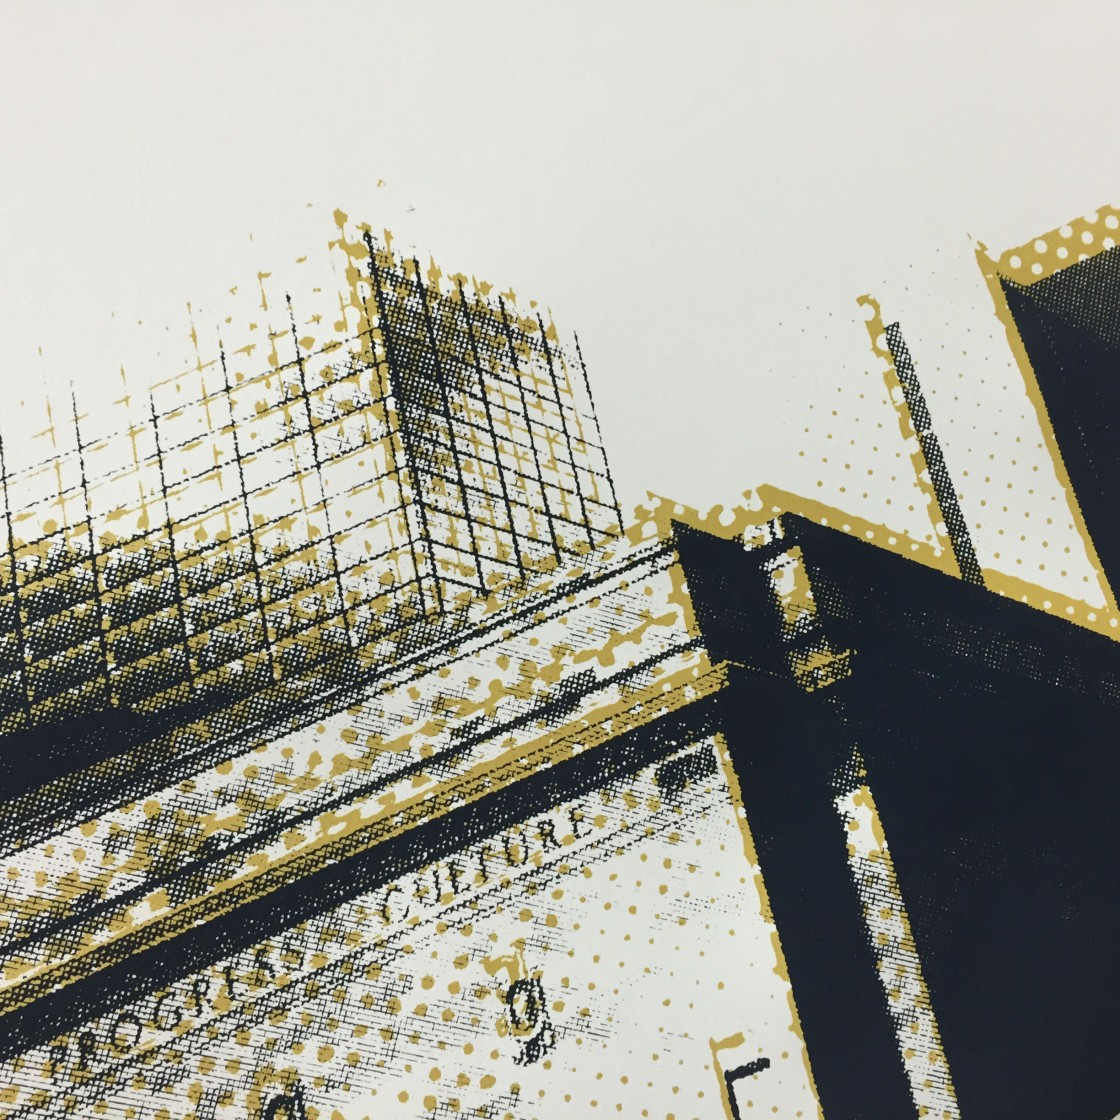 'Hilton Commission (Public Auditorium Detail 2)', Screen Print, 2016